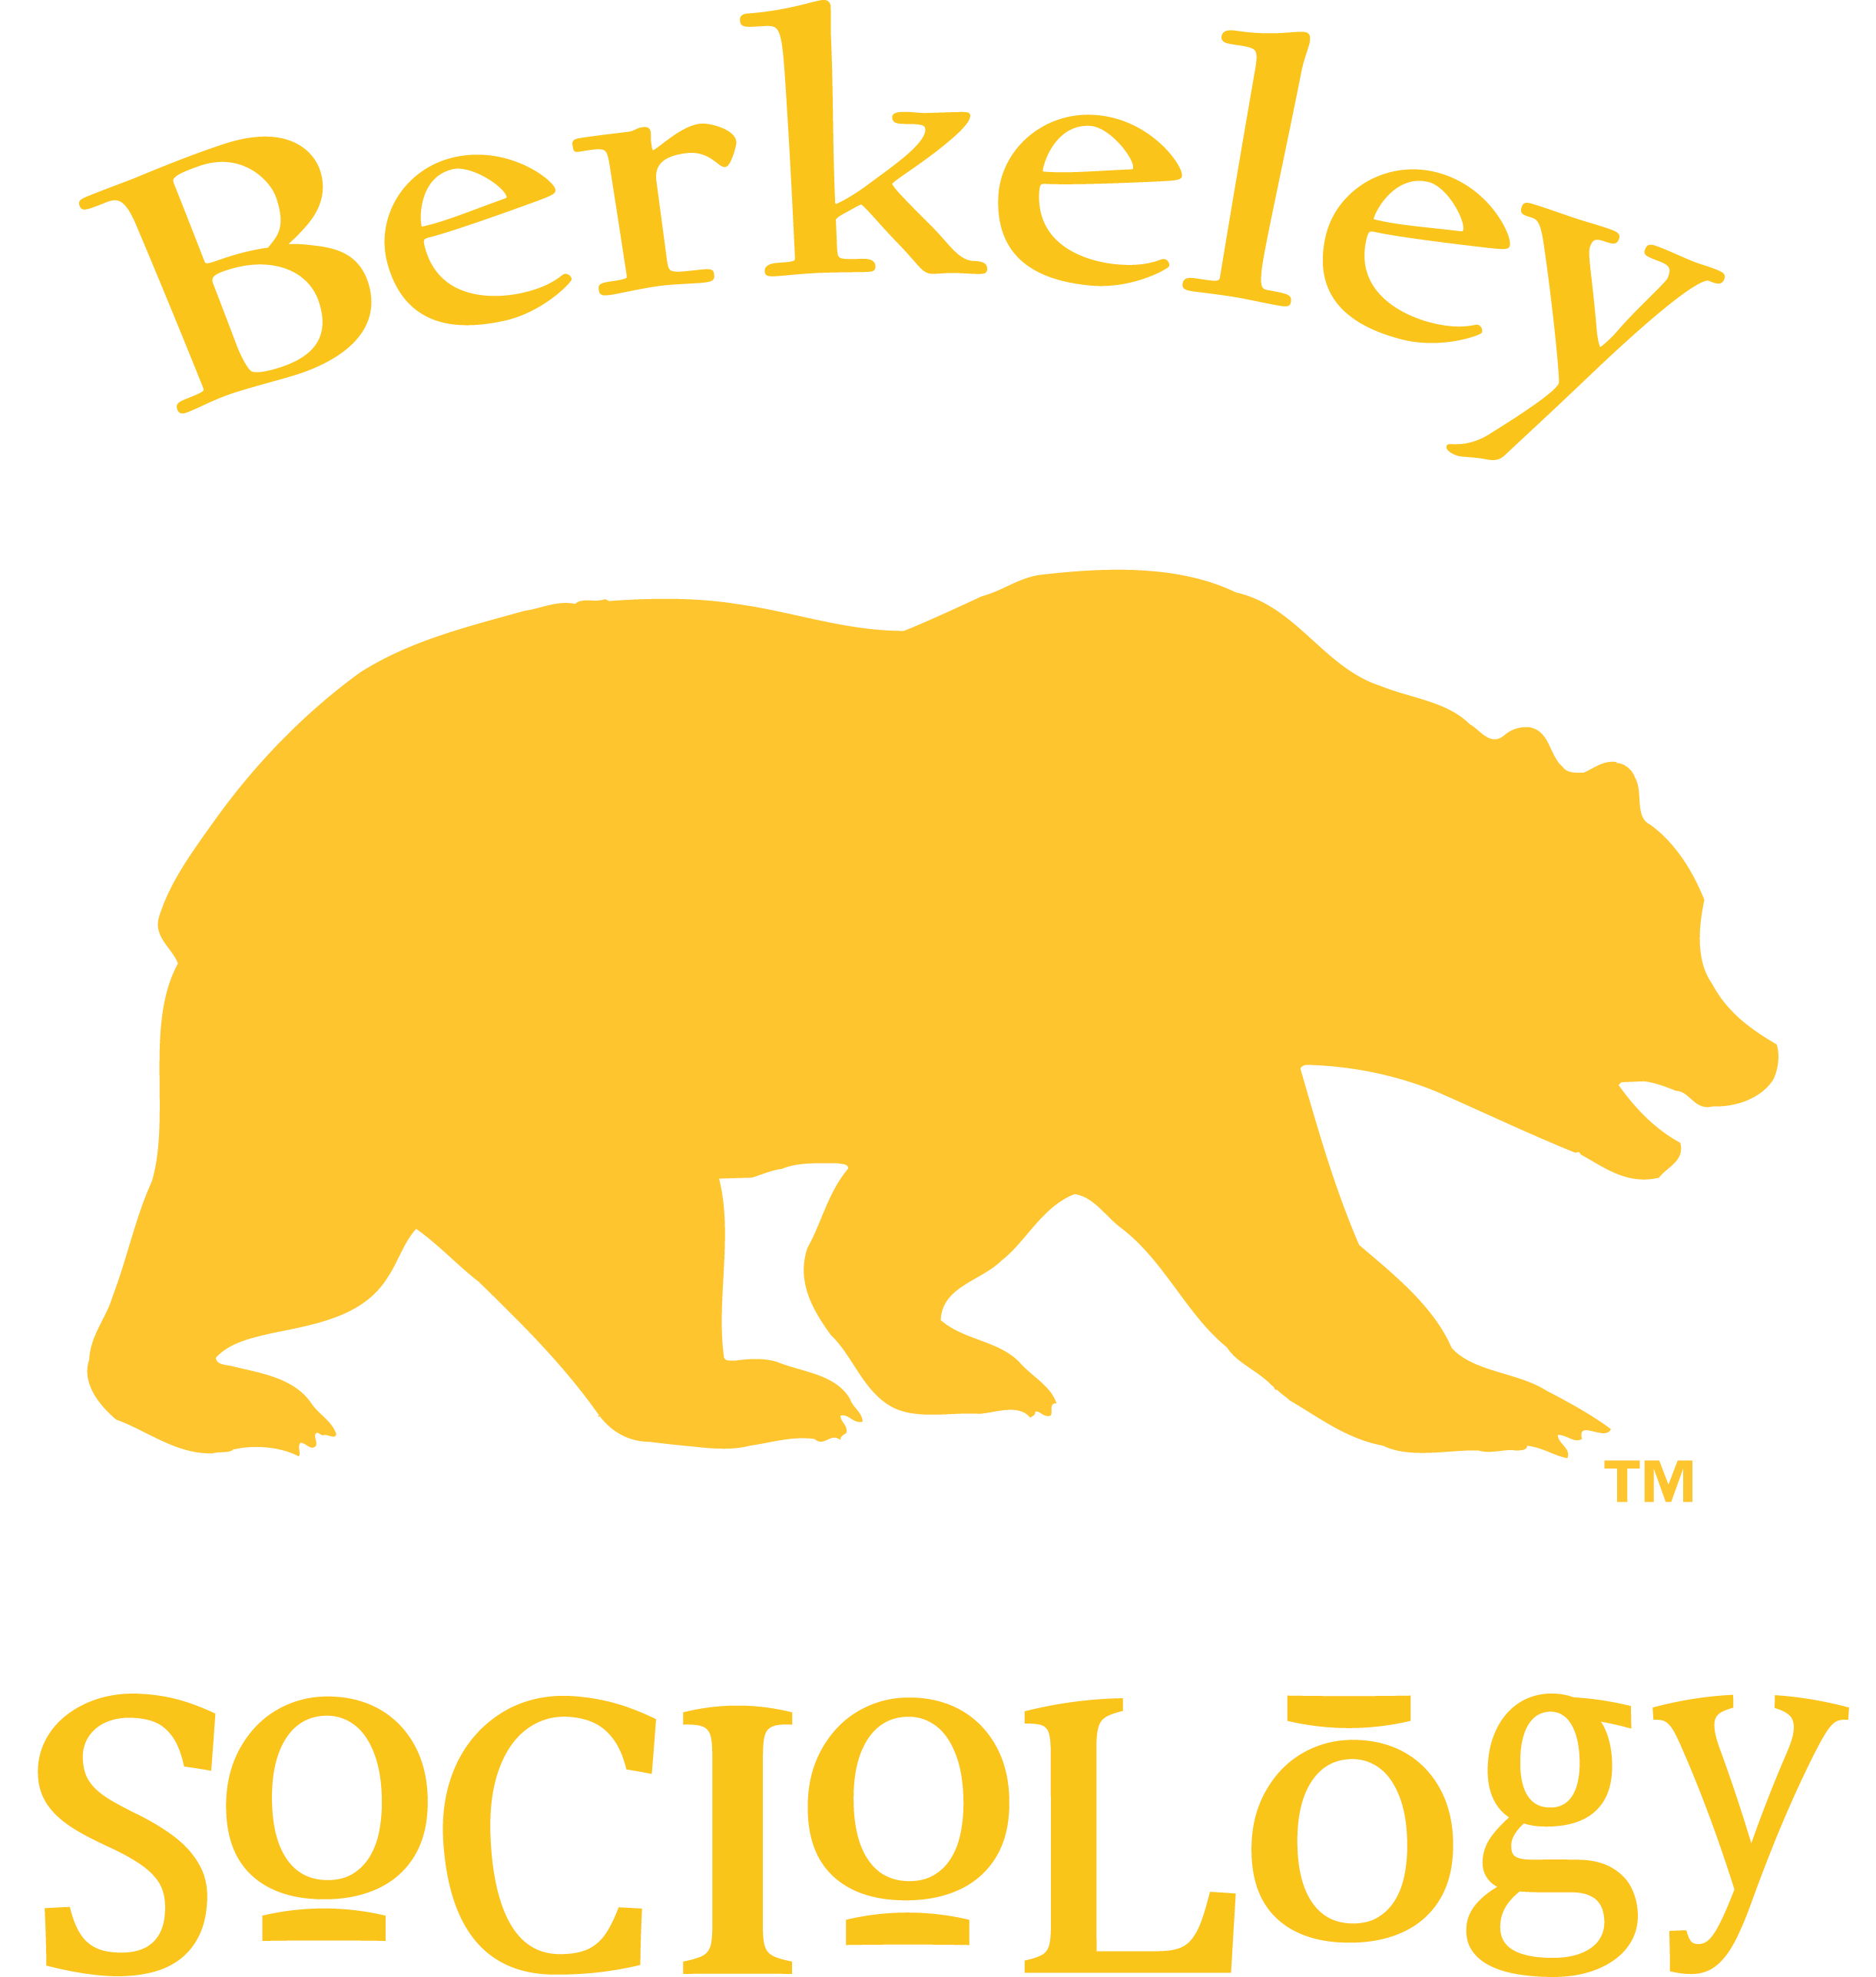 Phase 1 Berkeley Spring 2020.Soc 190 Request Form Spring 2020 Survey